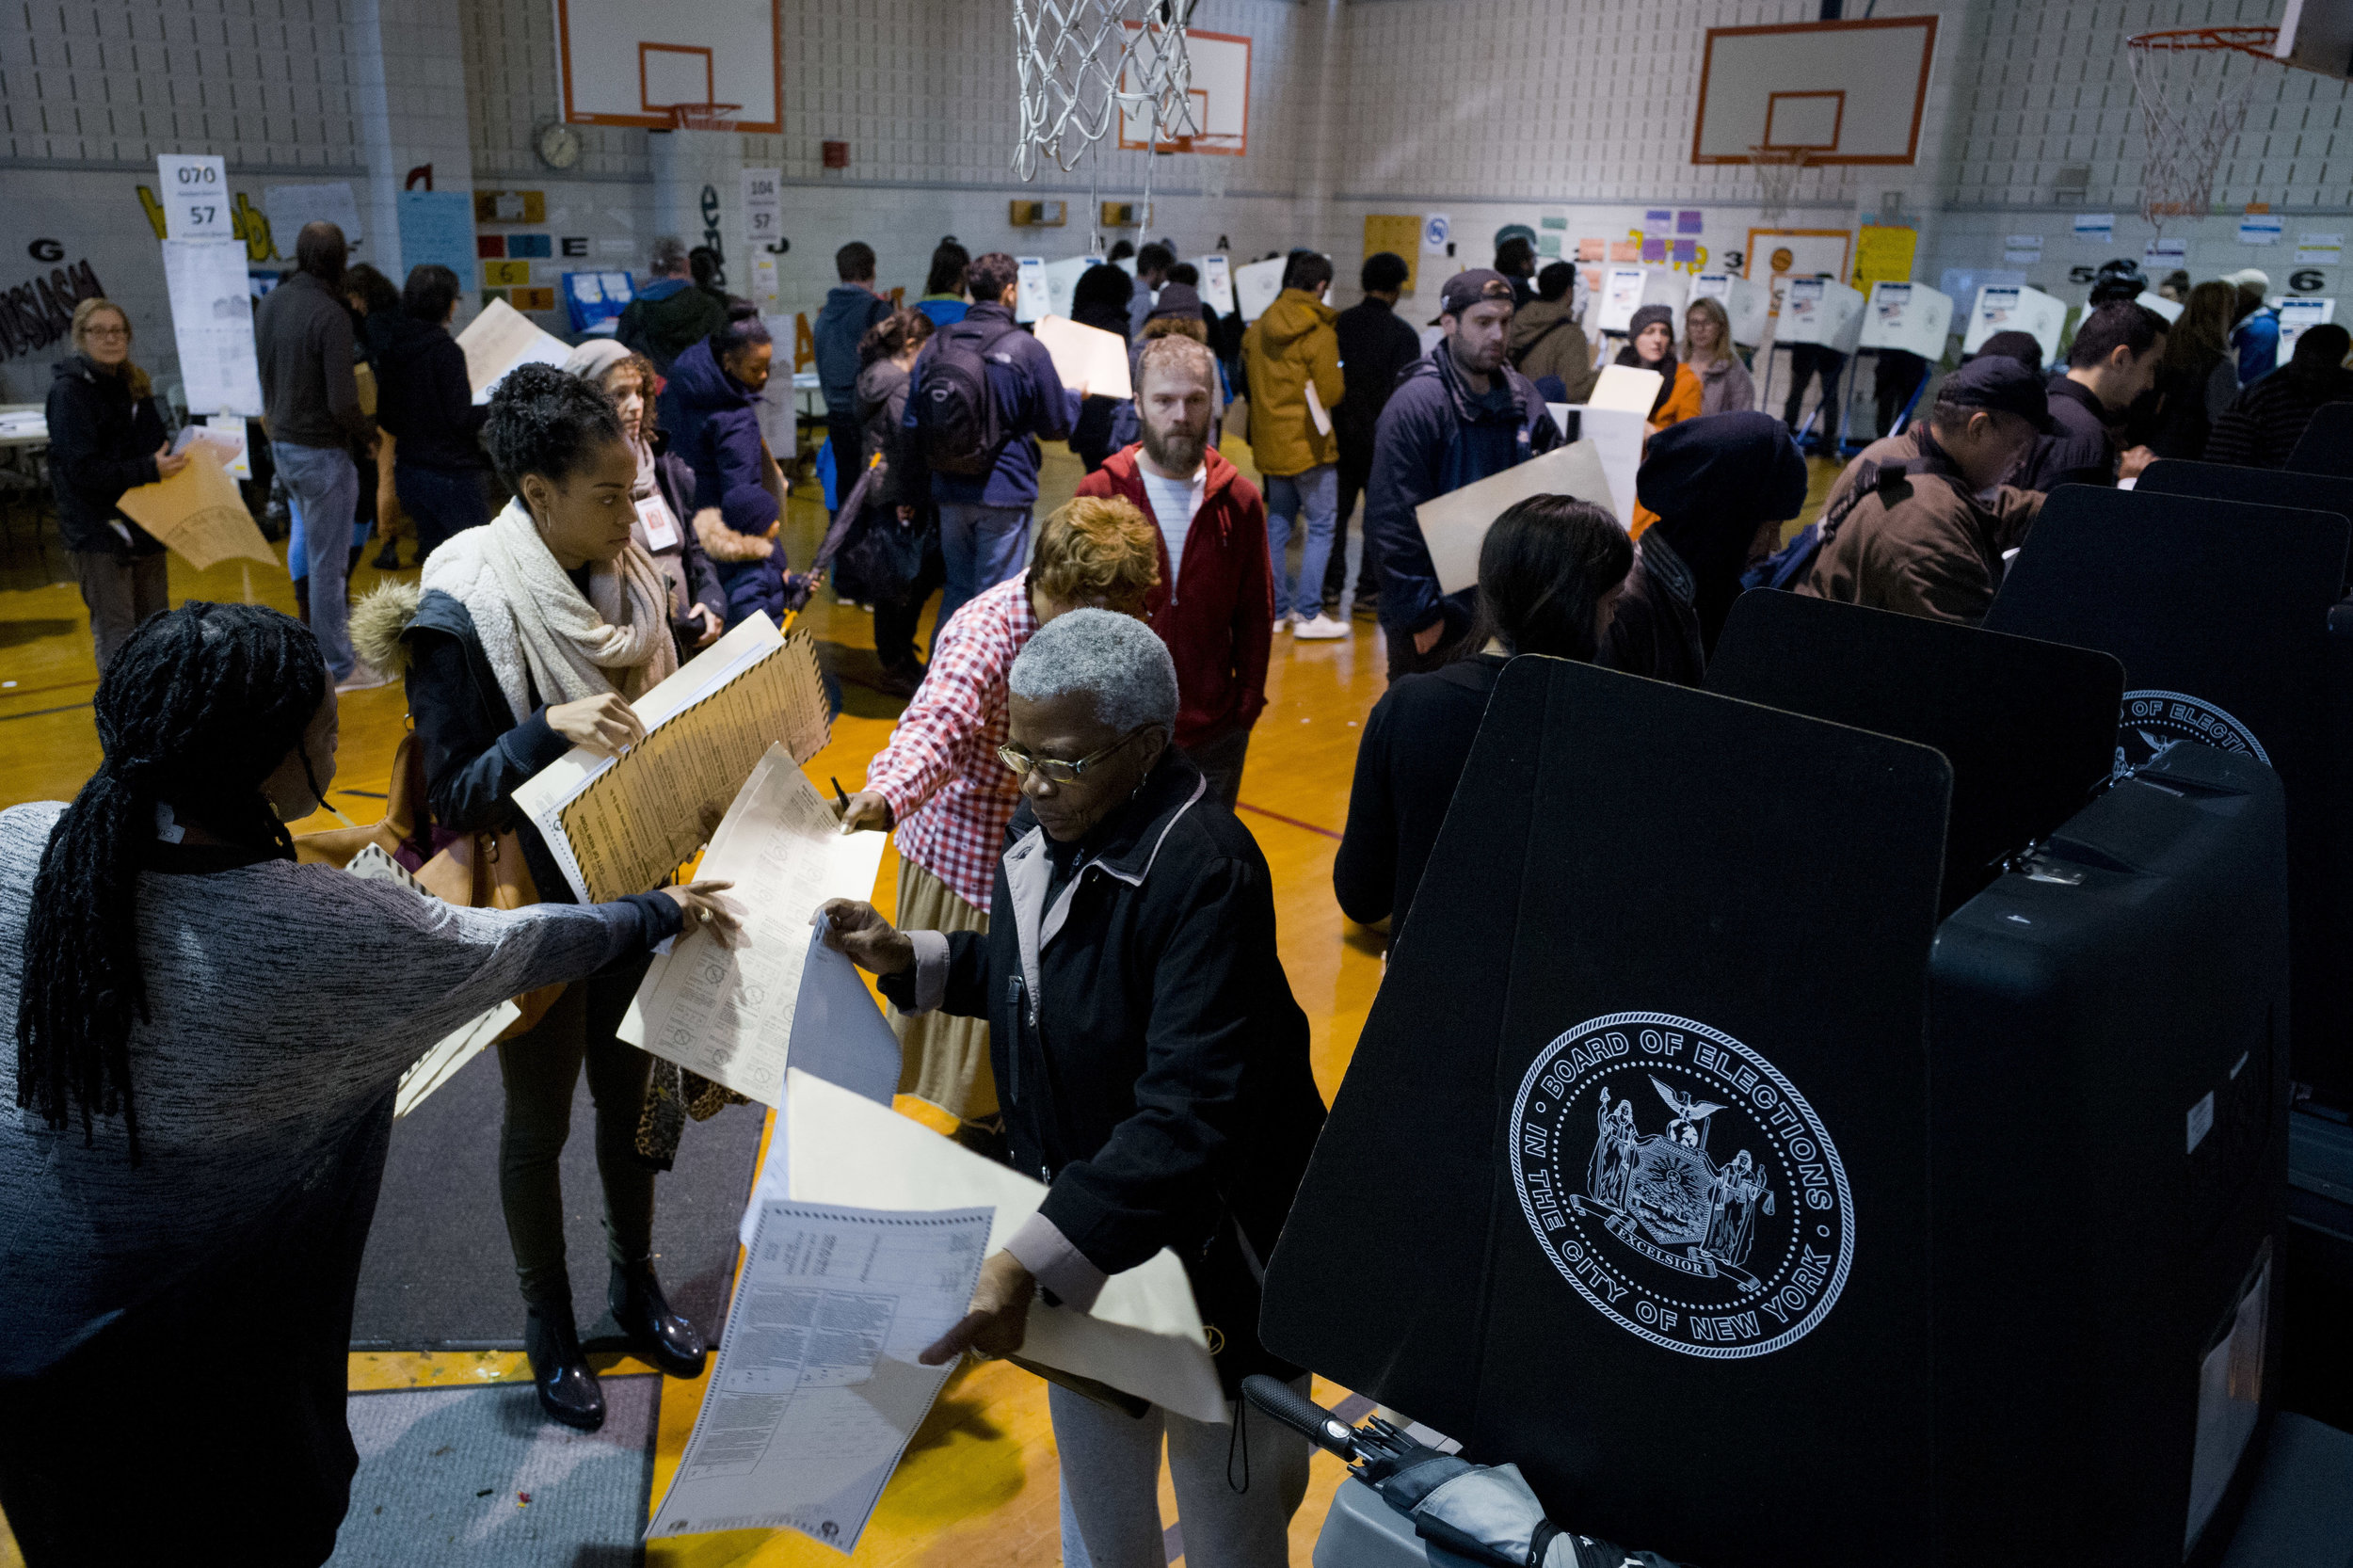 NEW YORKERS WAIT TO CAST THEIR BALLOTS DURING THE 2018 MIDTERM ELECTIONS. AP Photo/Mark Lennihan